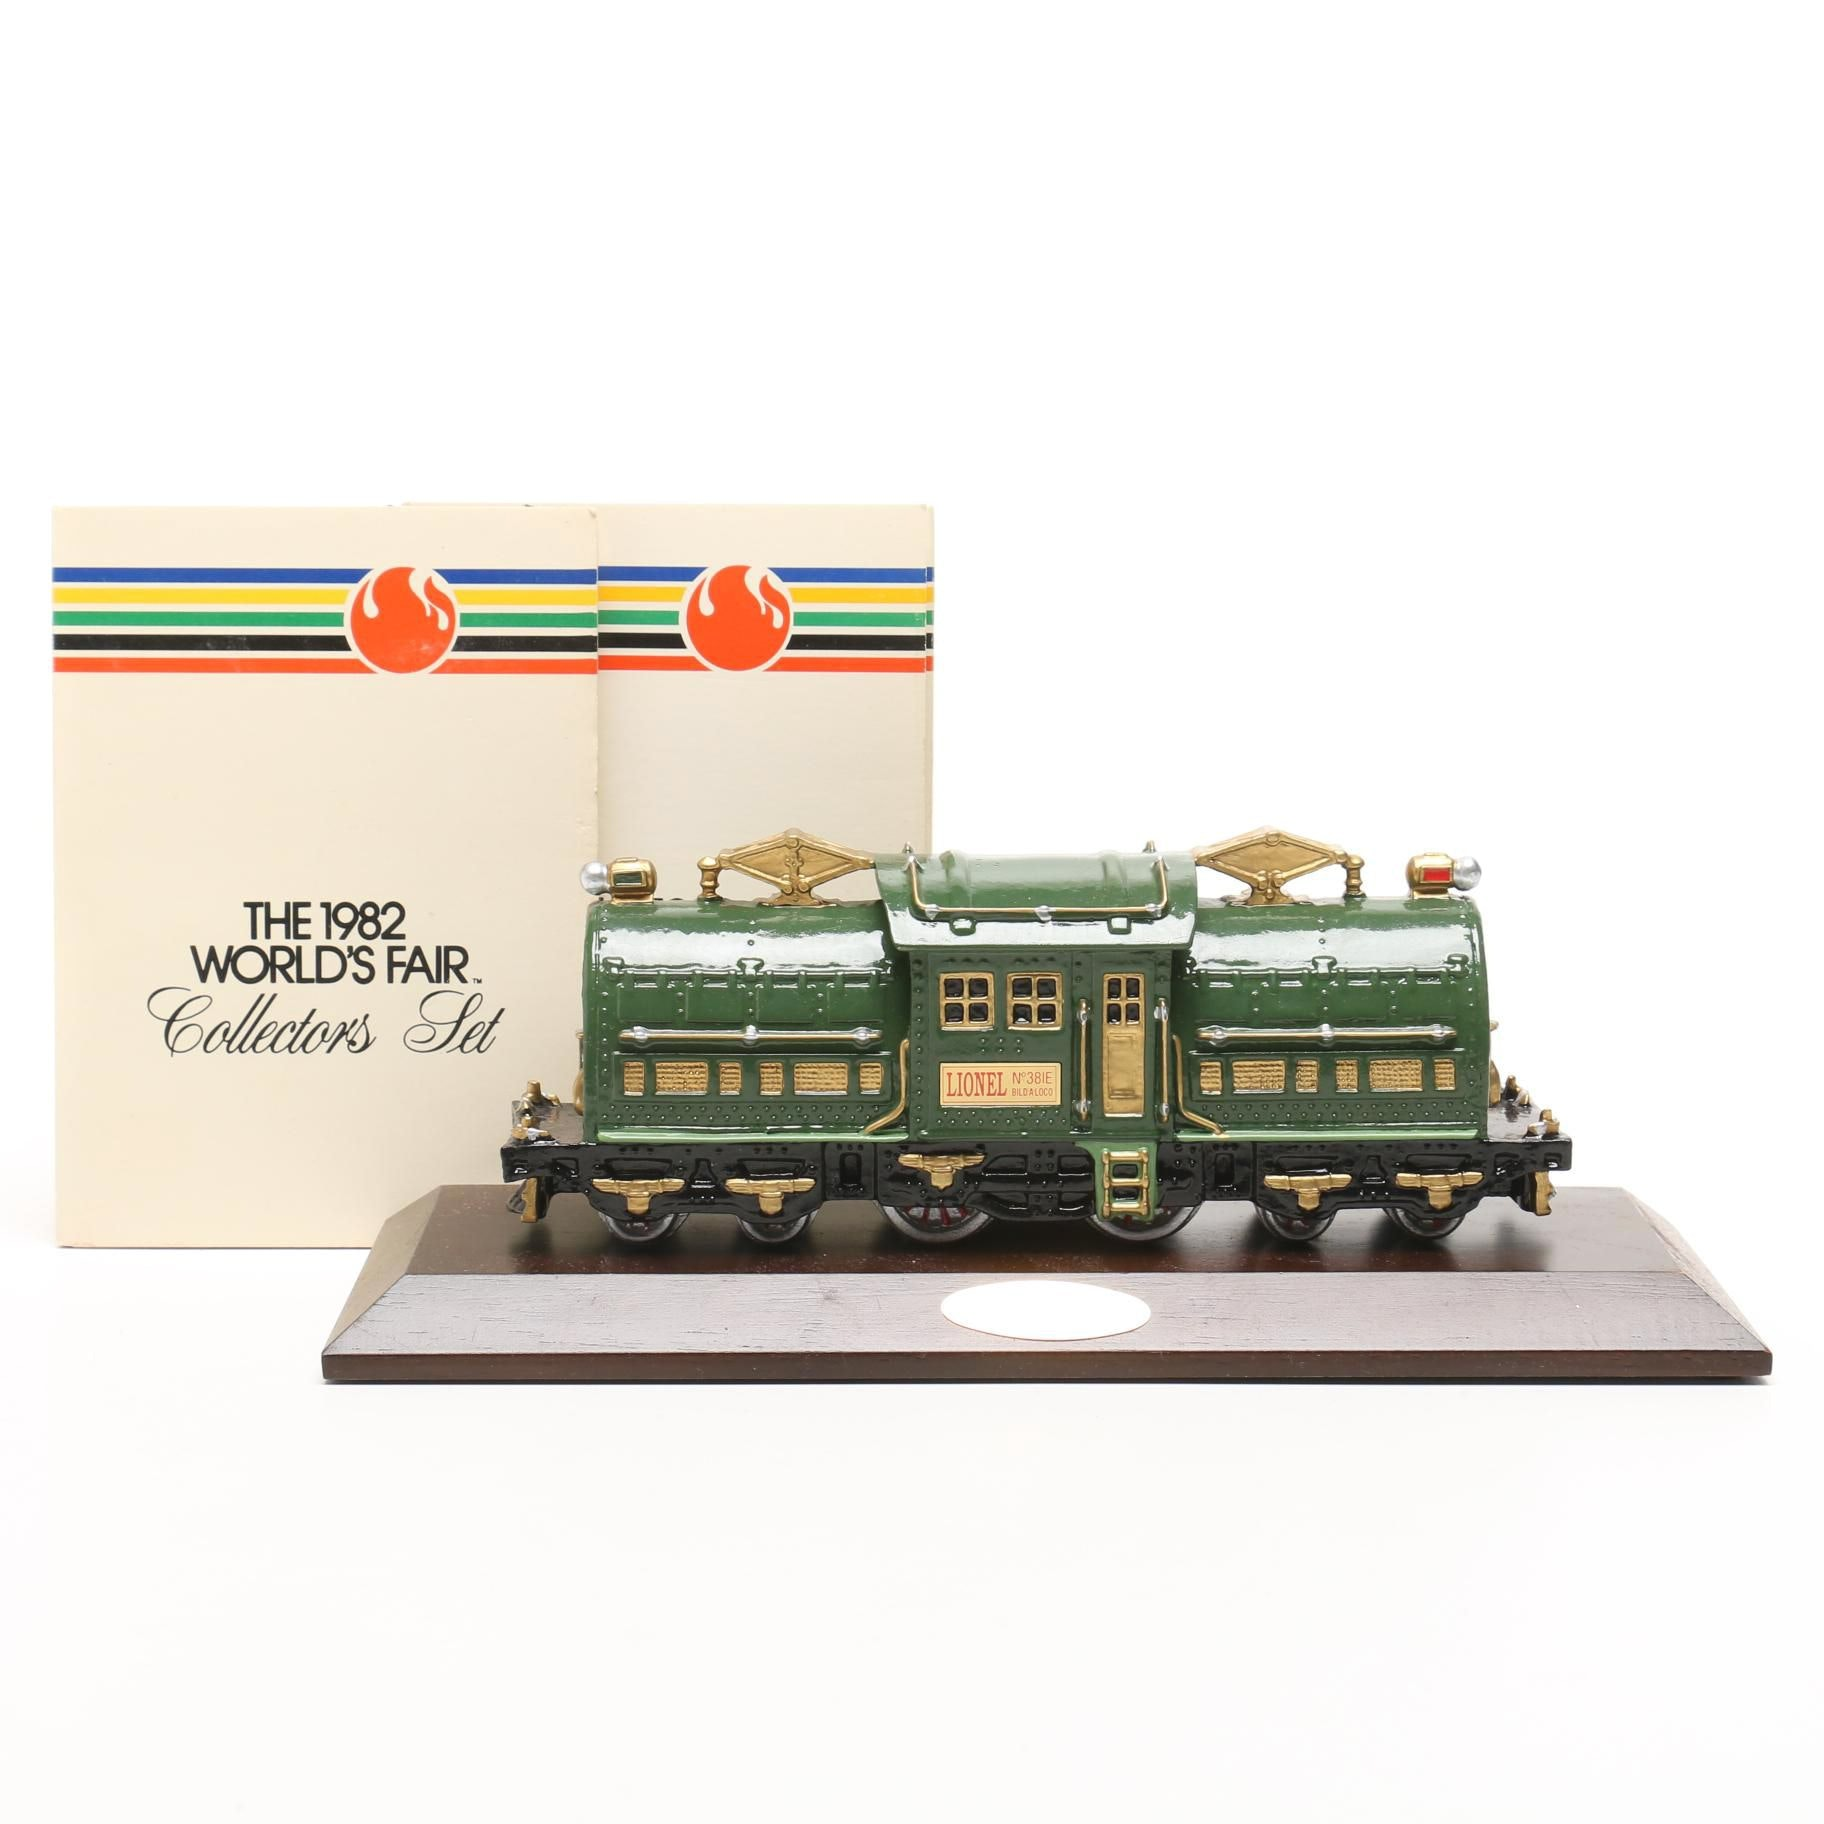 Avon Collectible Lionel Train Model and Two Sets of 1982 World's Fair Medals